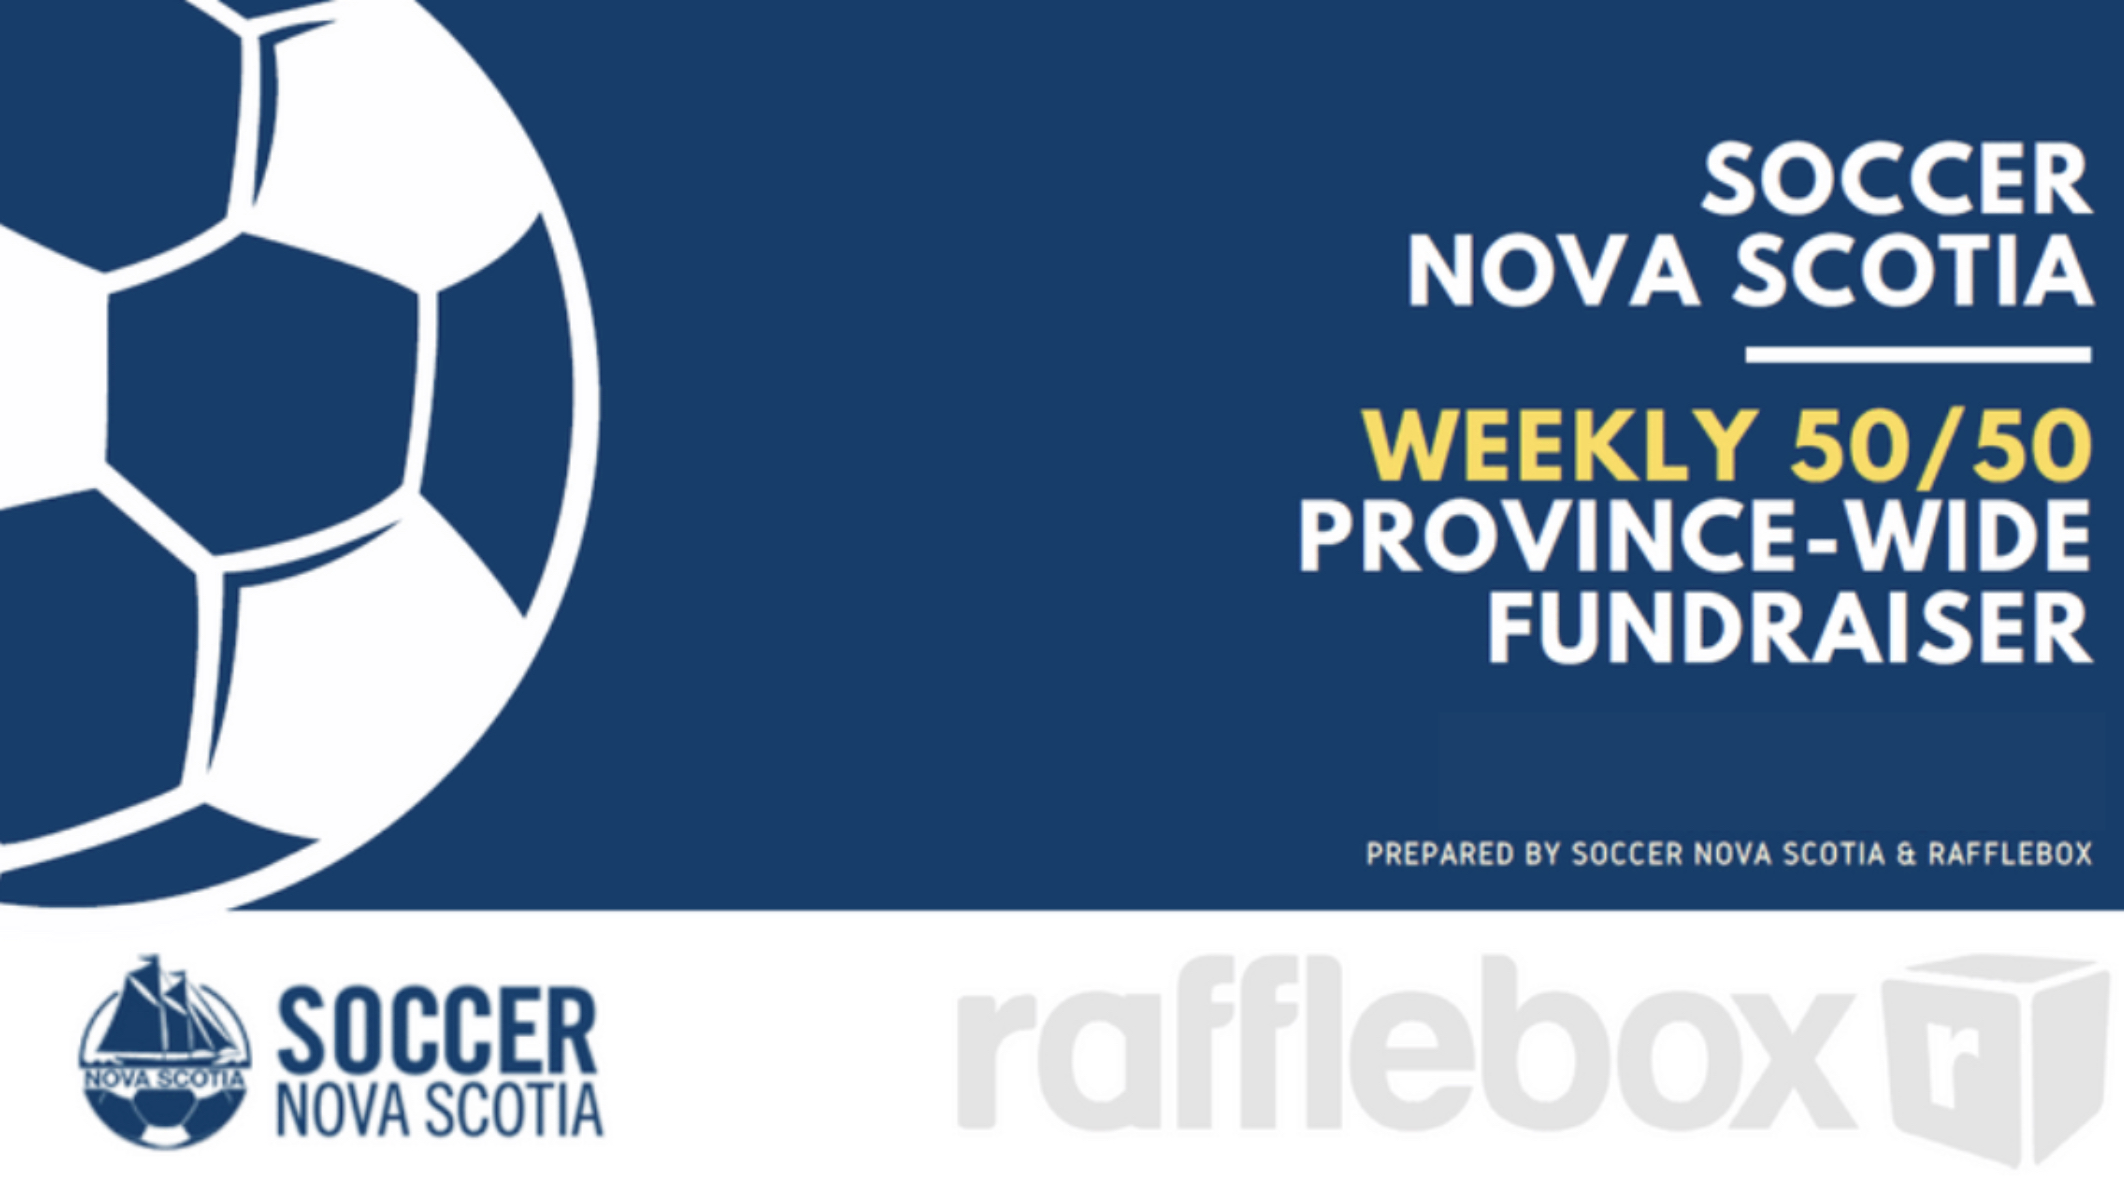 UDFC joins Soccer NS weekly 50/50 draw